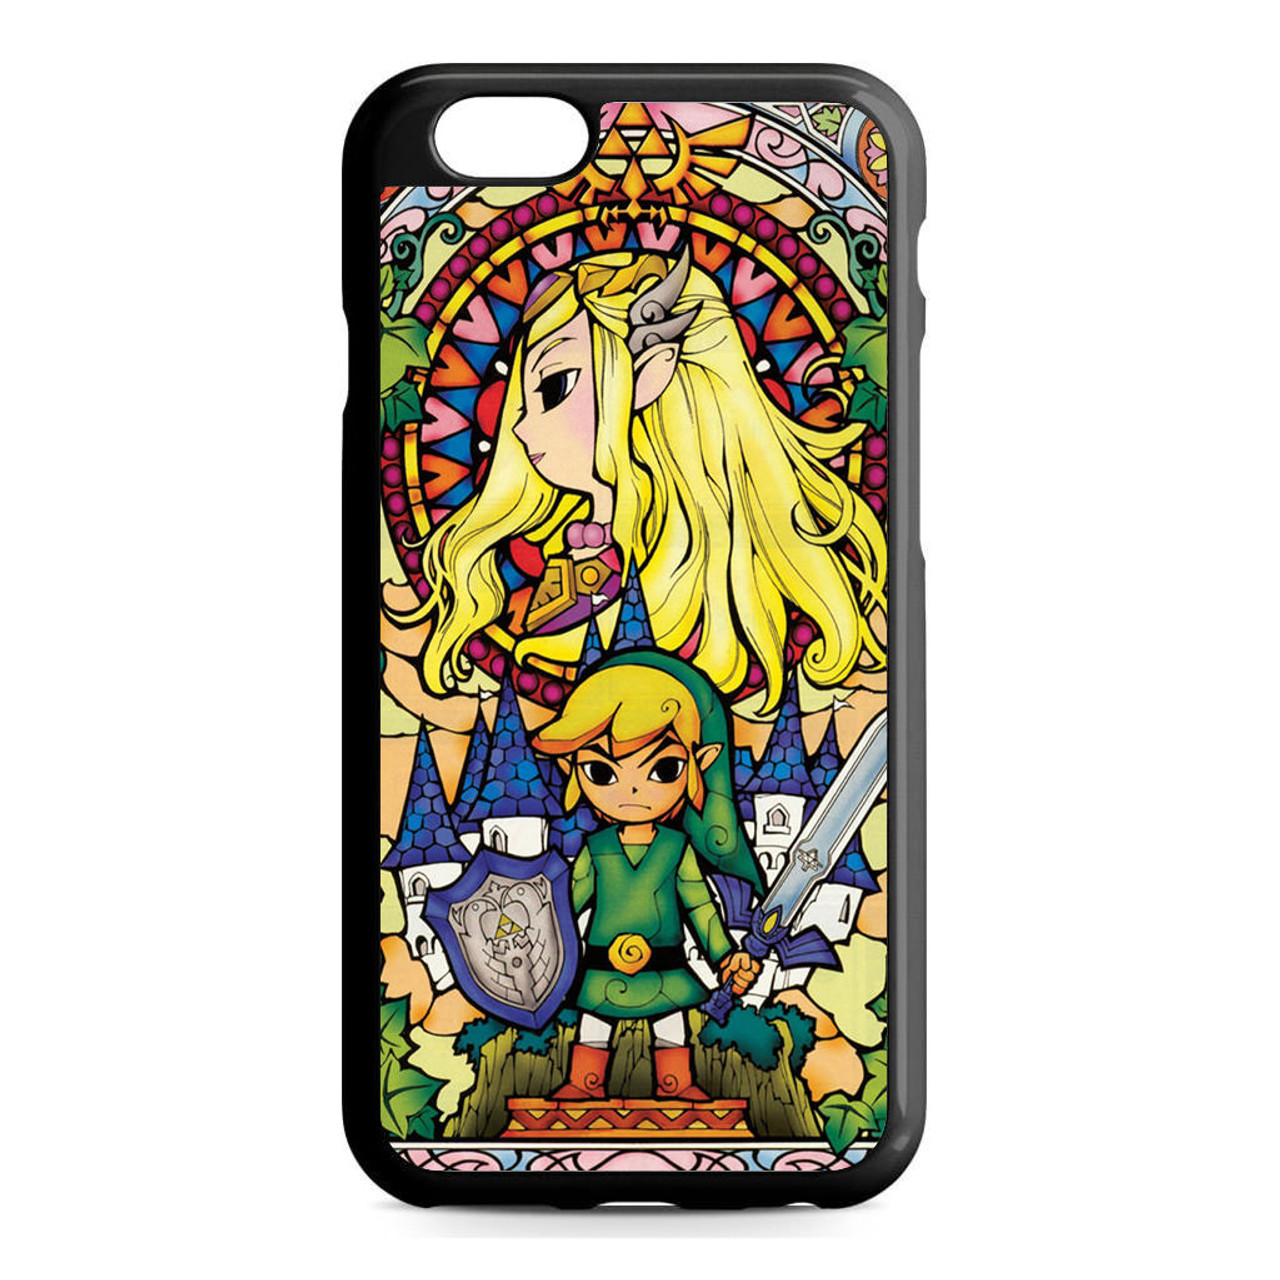 zelda iphone 6 case